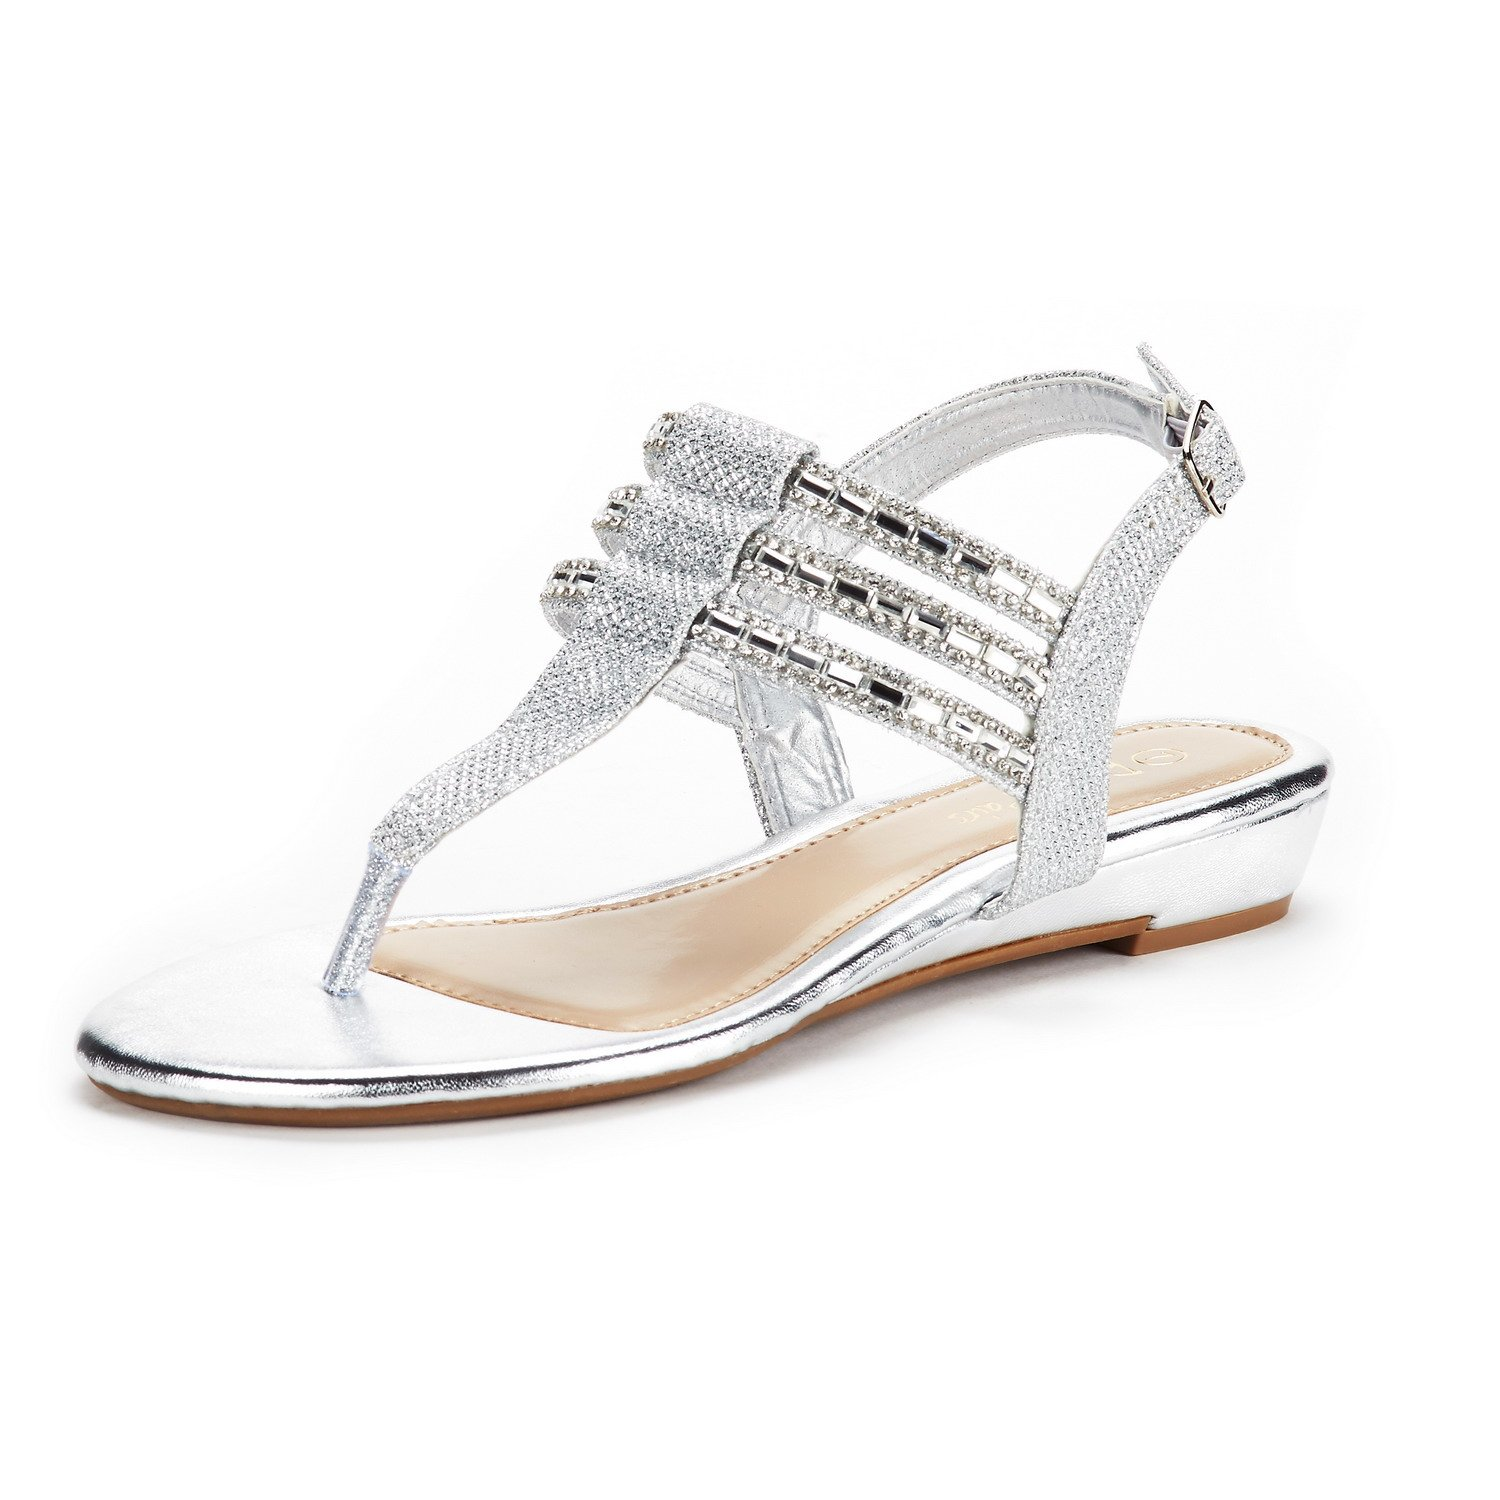 DREAM PAIRS Women's Estelle_W Silver Fashion Rhinestones Low Wedge Sandals Size 10 M US by DREAM PAIRS